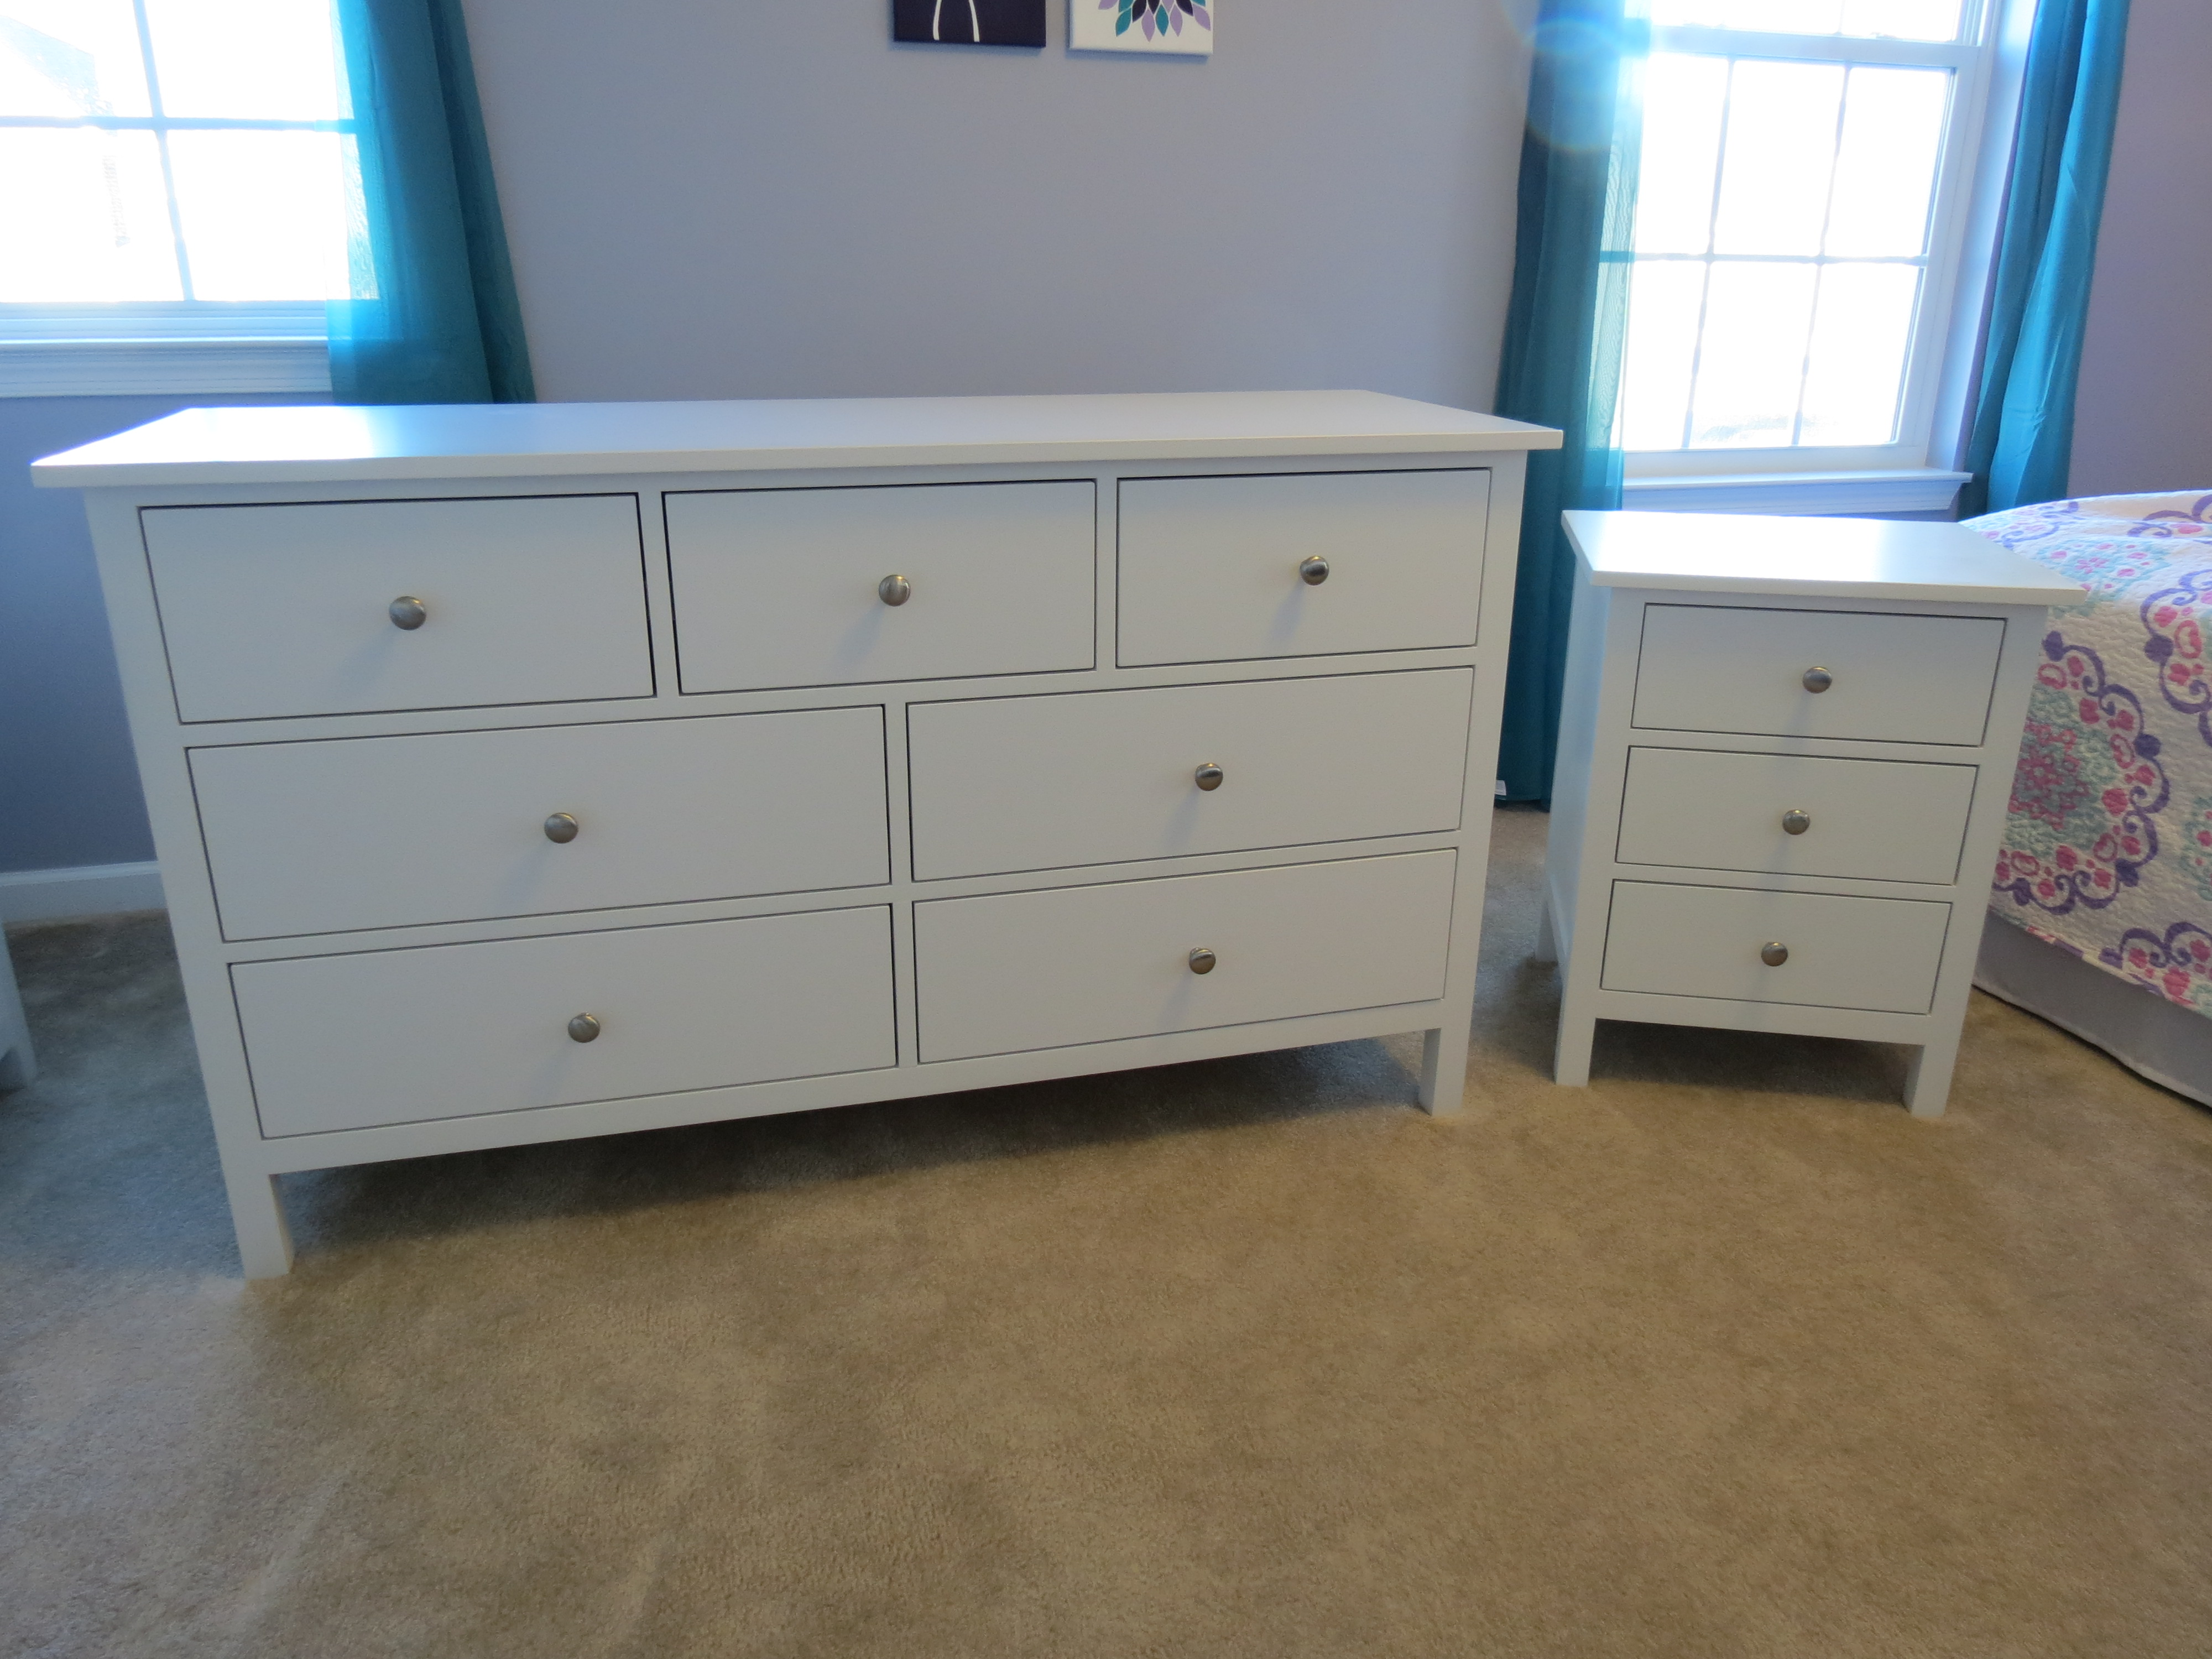 White Nightstand And Dresser: Lilia's Dresser And Nightstand - DIY Projects